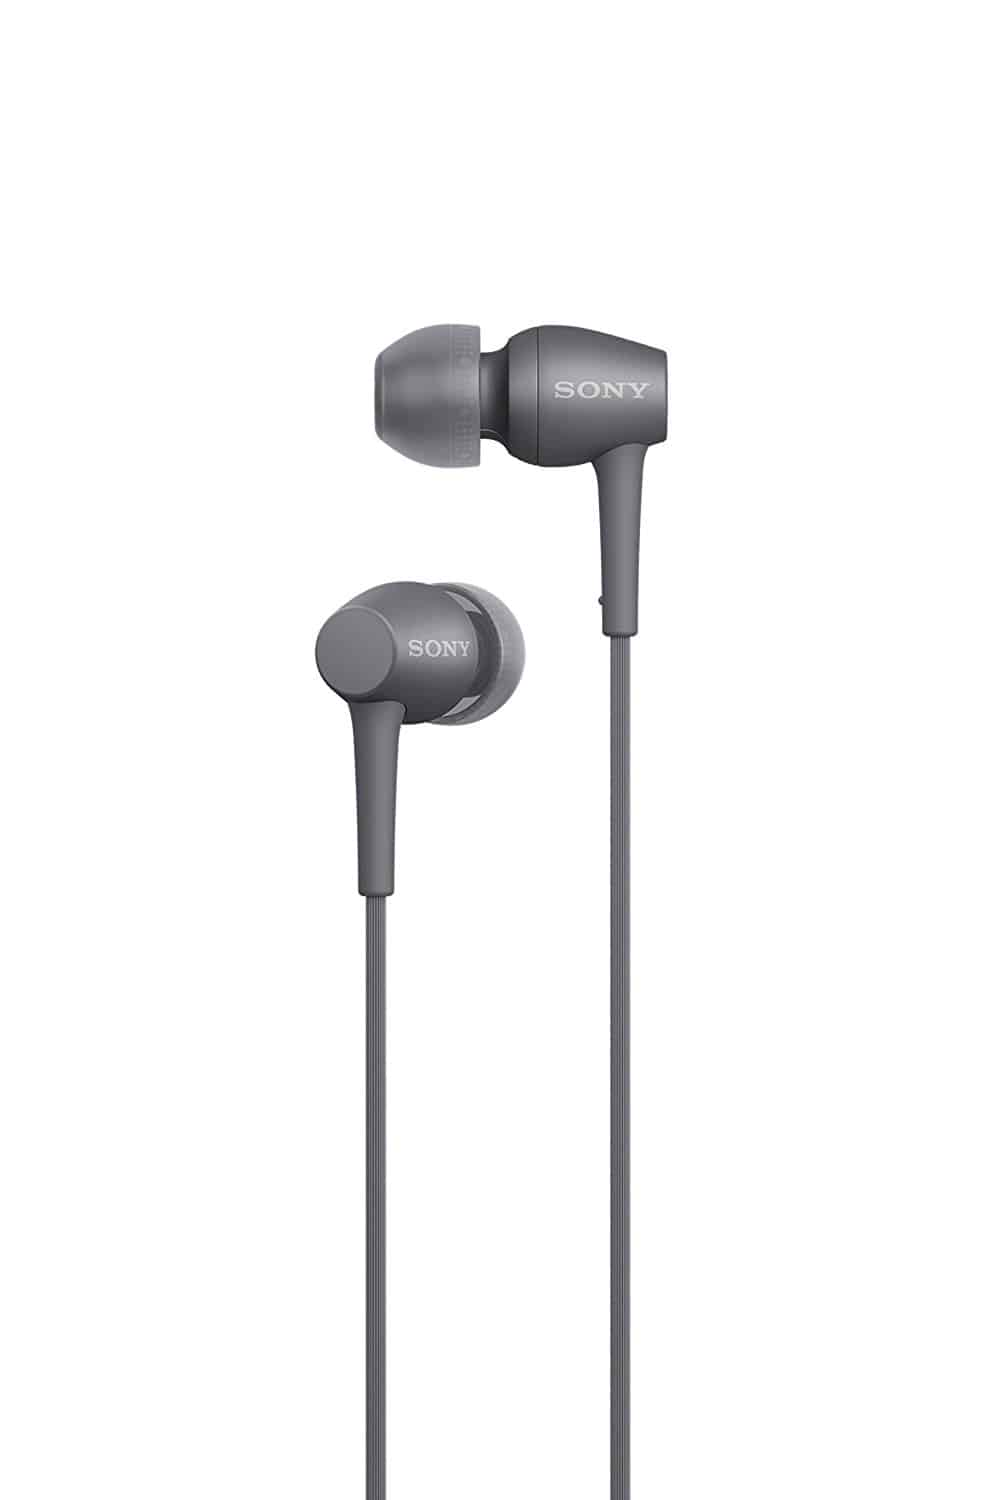 Sony H500A Earbuds